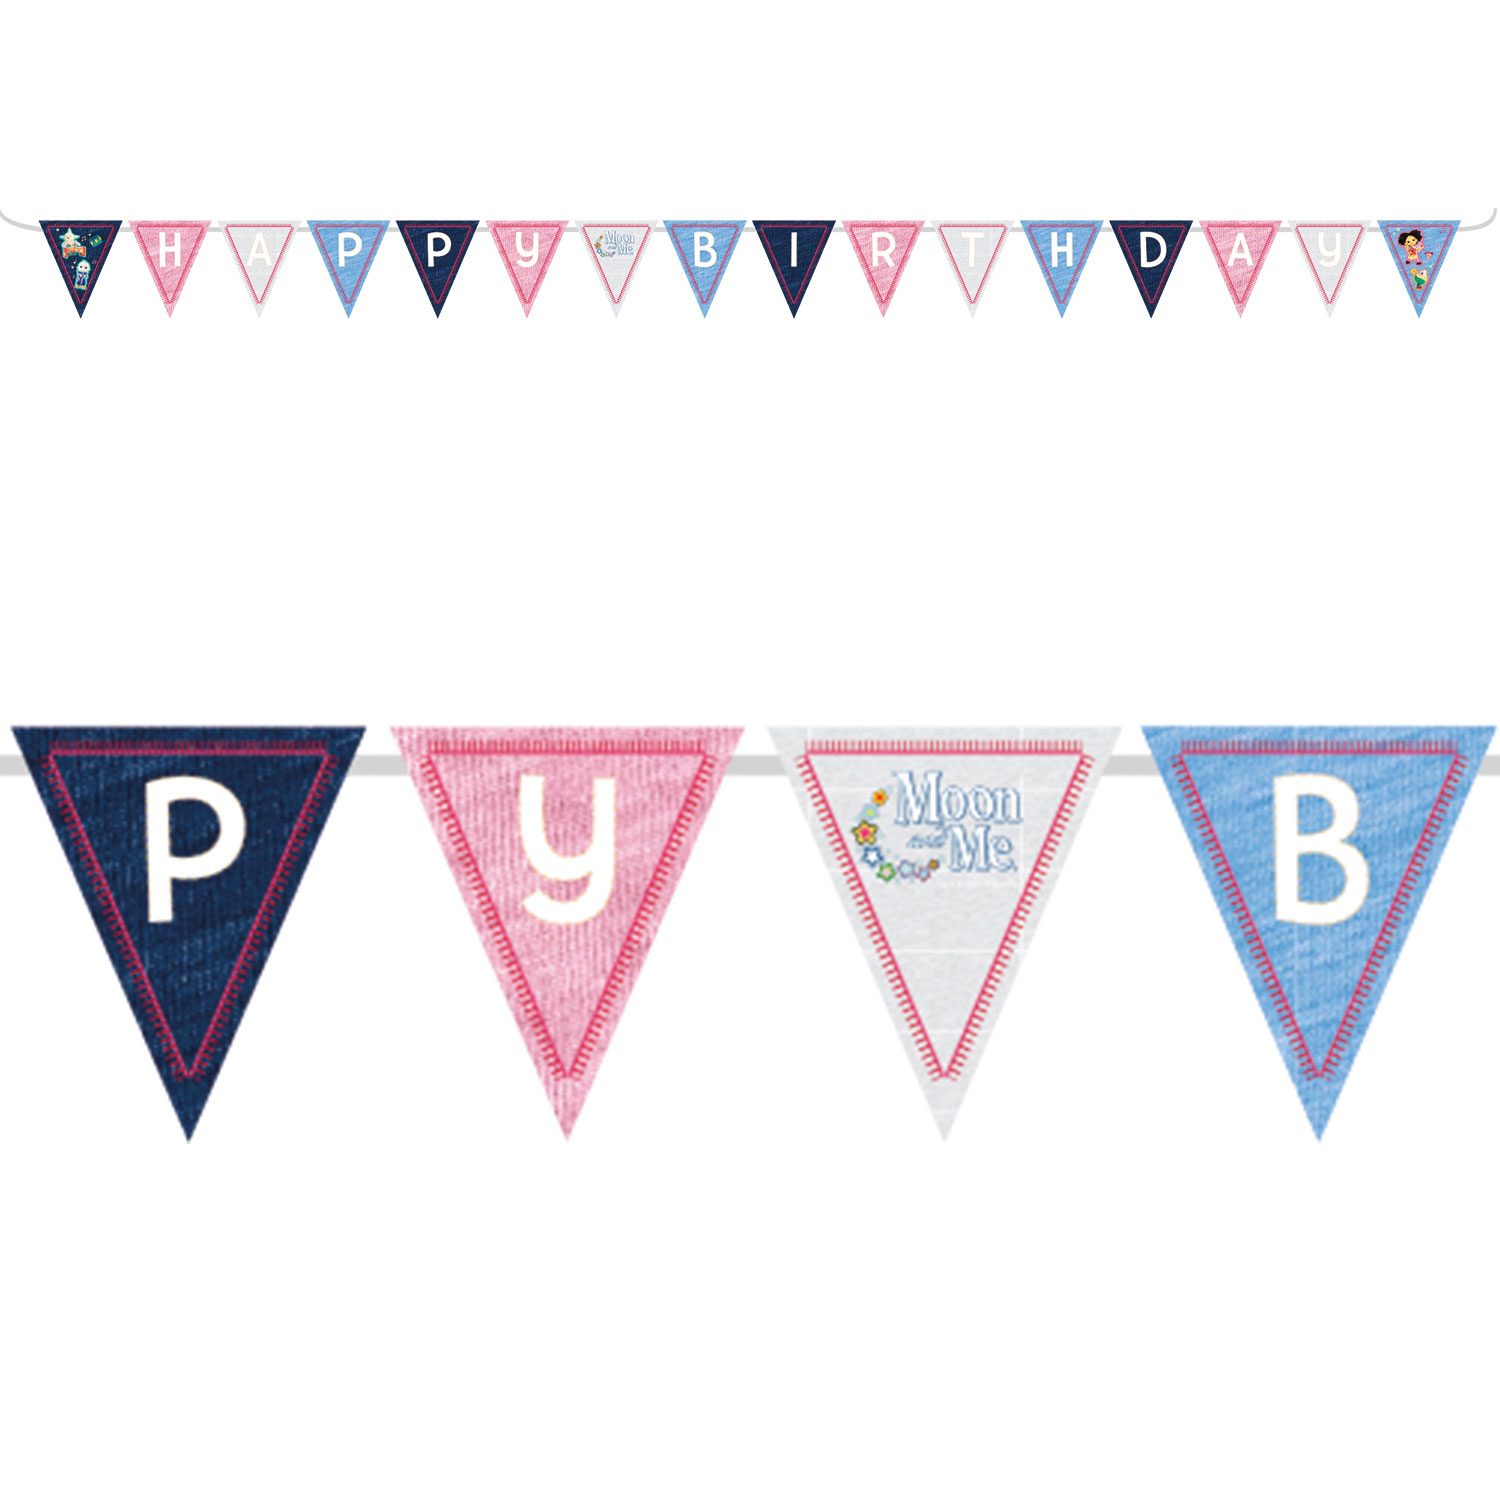 Moon And Me Party Happy Birthday Flag Banner